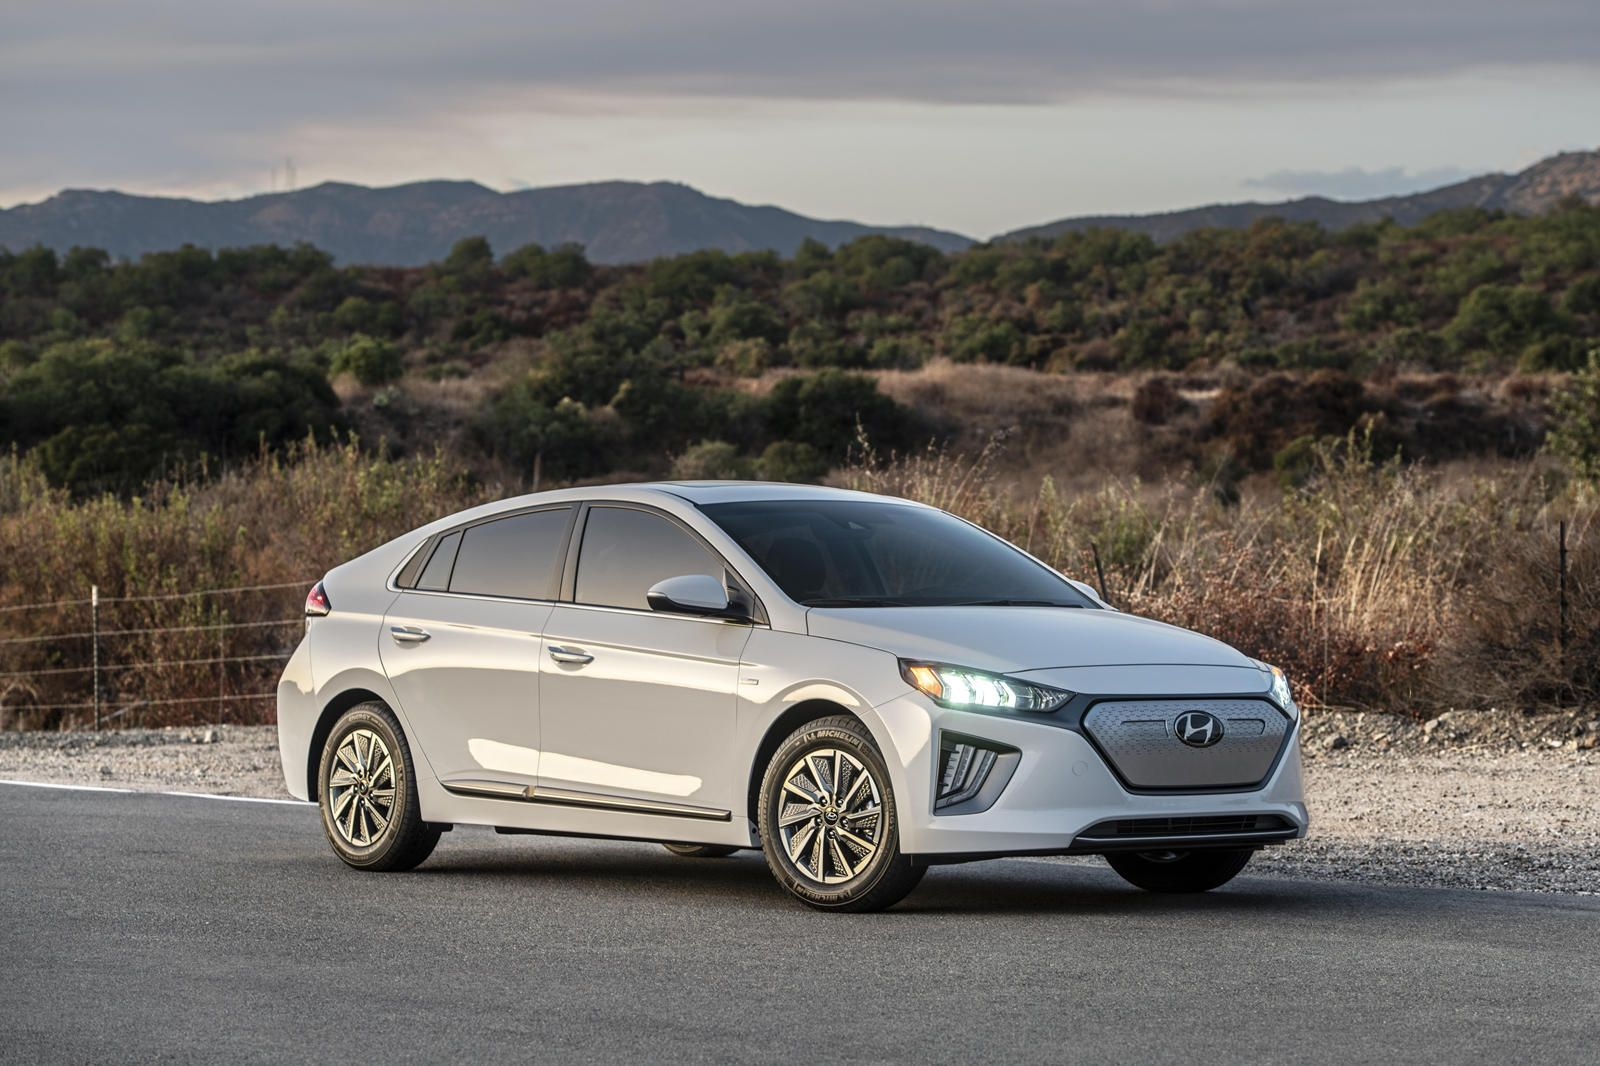 2020 Hyundai Ioniq Arrives With Fresh Styling And Improved